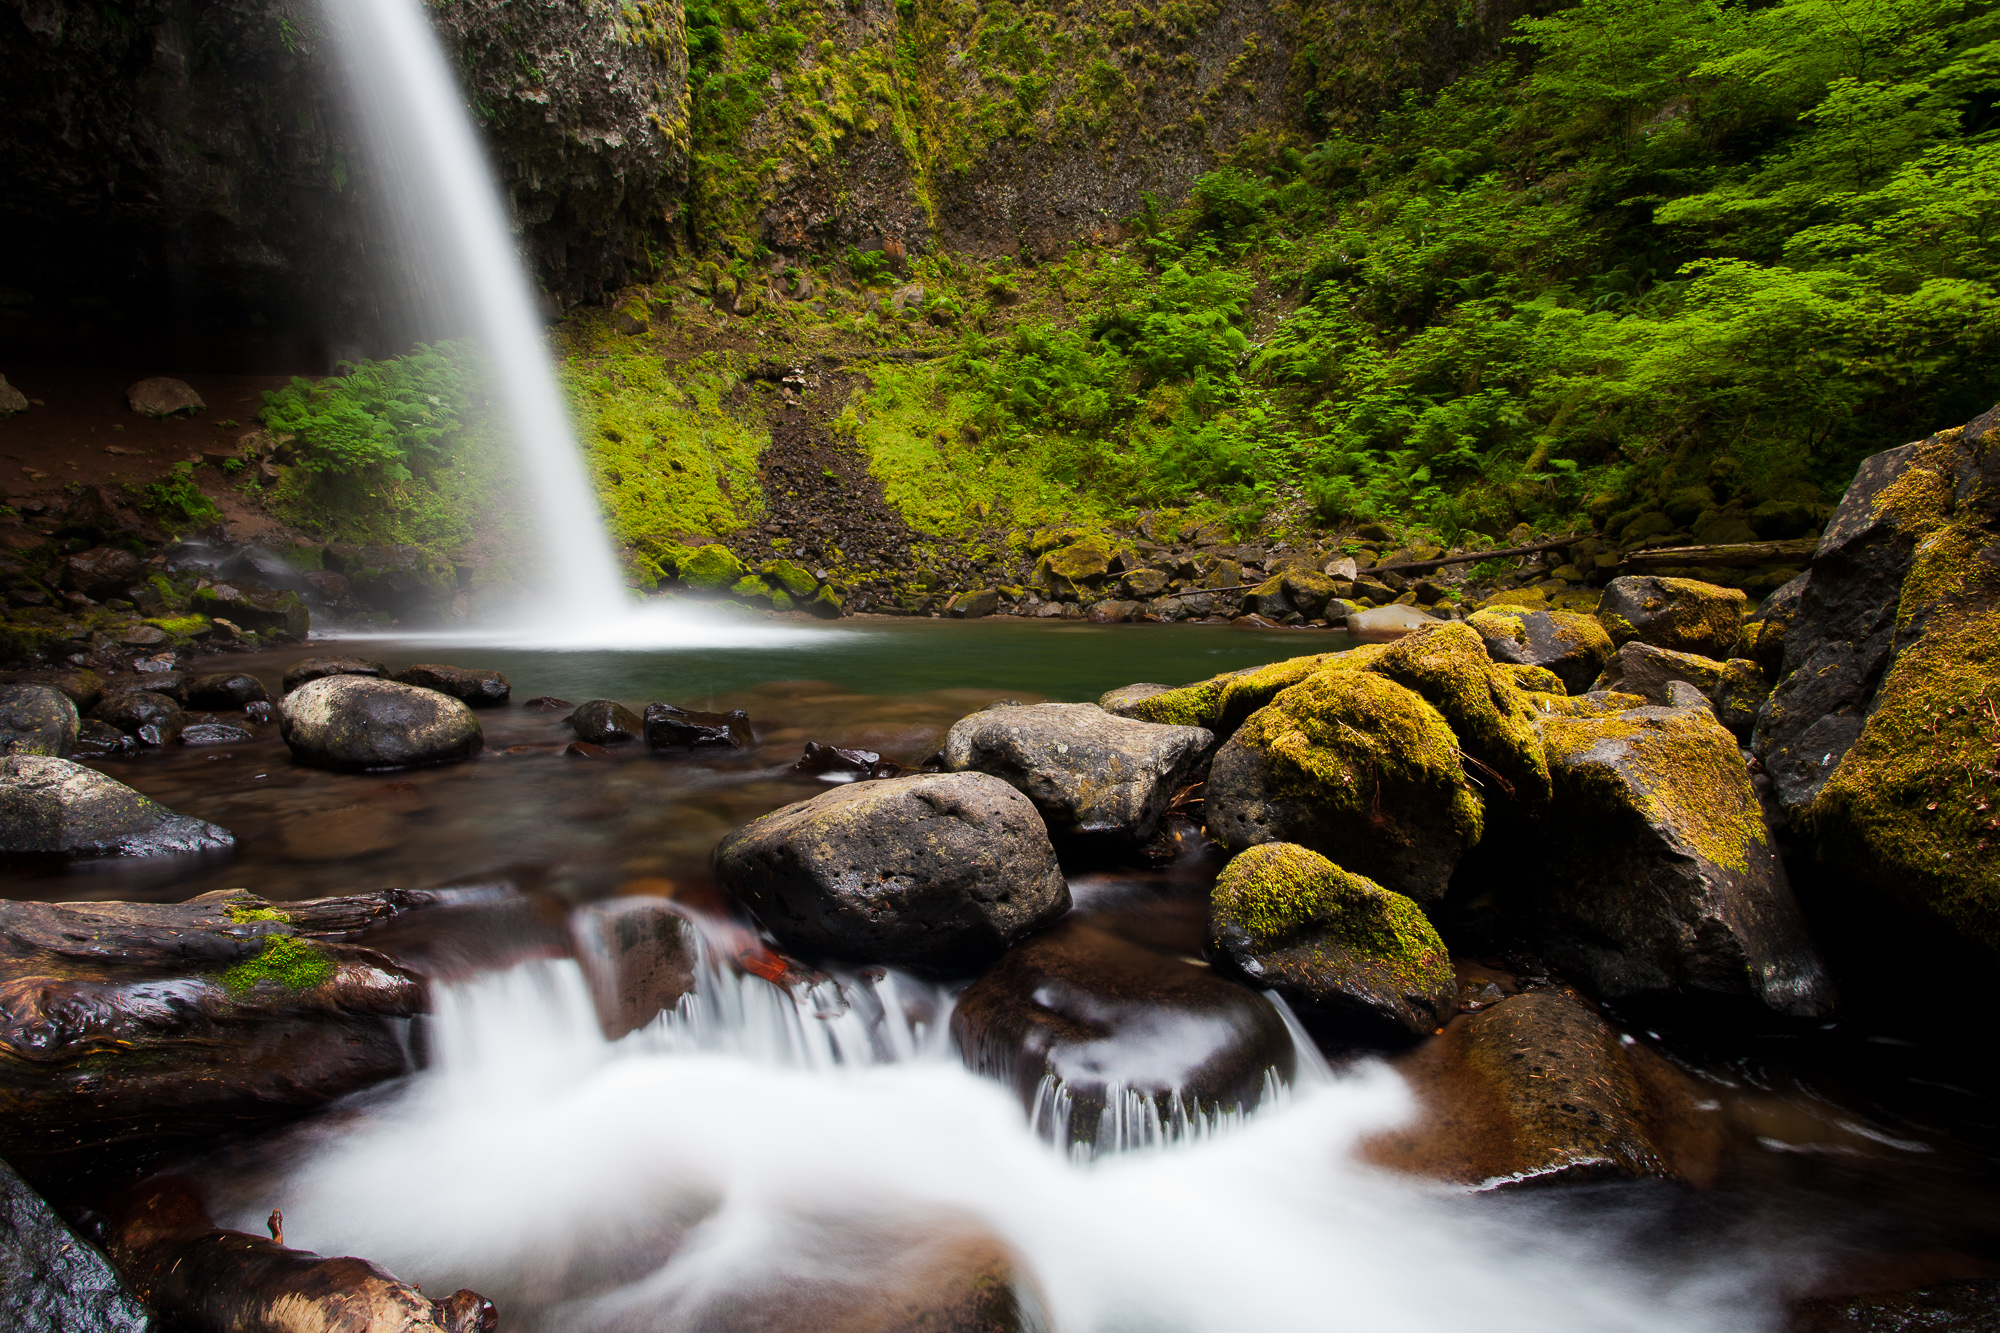 Ponytail Falls shoots outward from a cleft in a rock cliff, and cascades over large stones below, Columbia River Gorge, Oregon